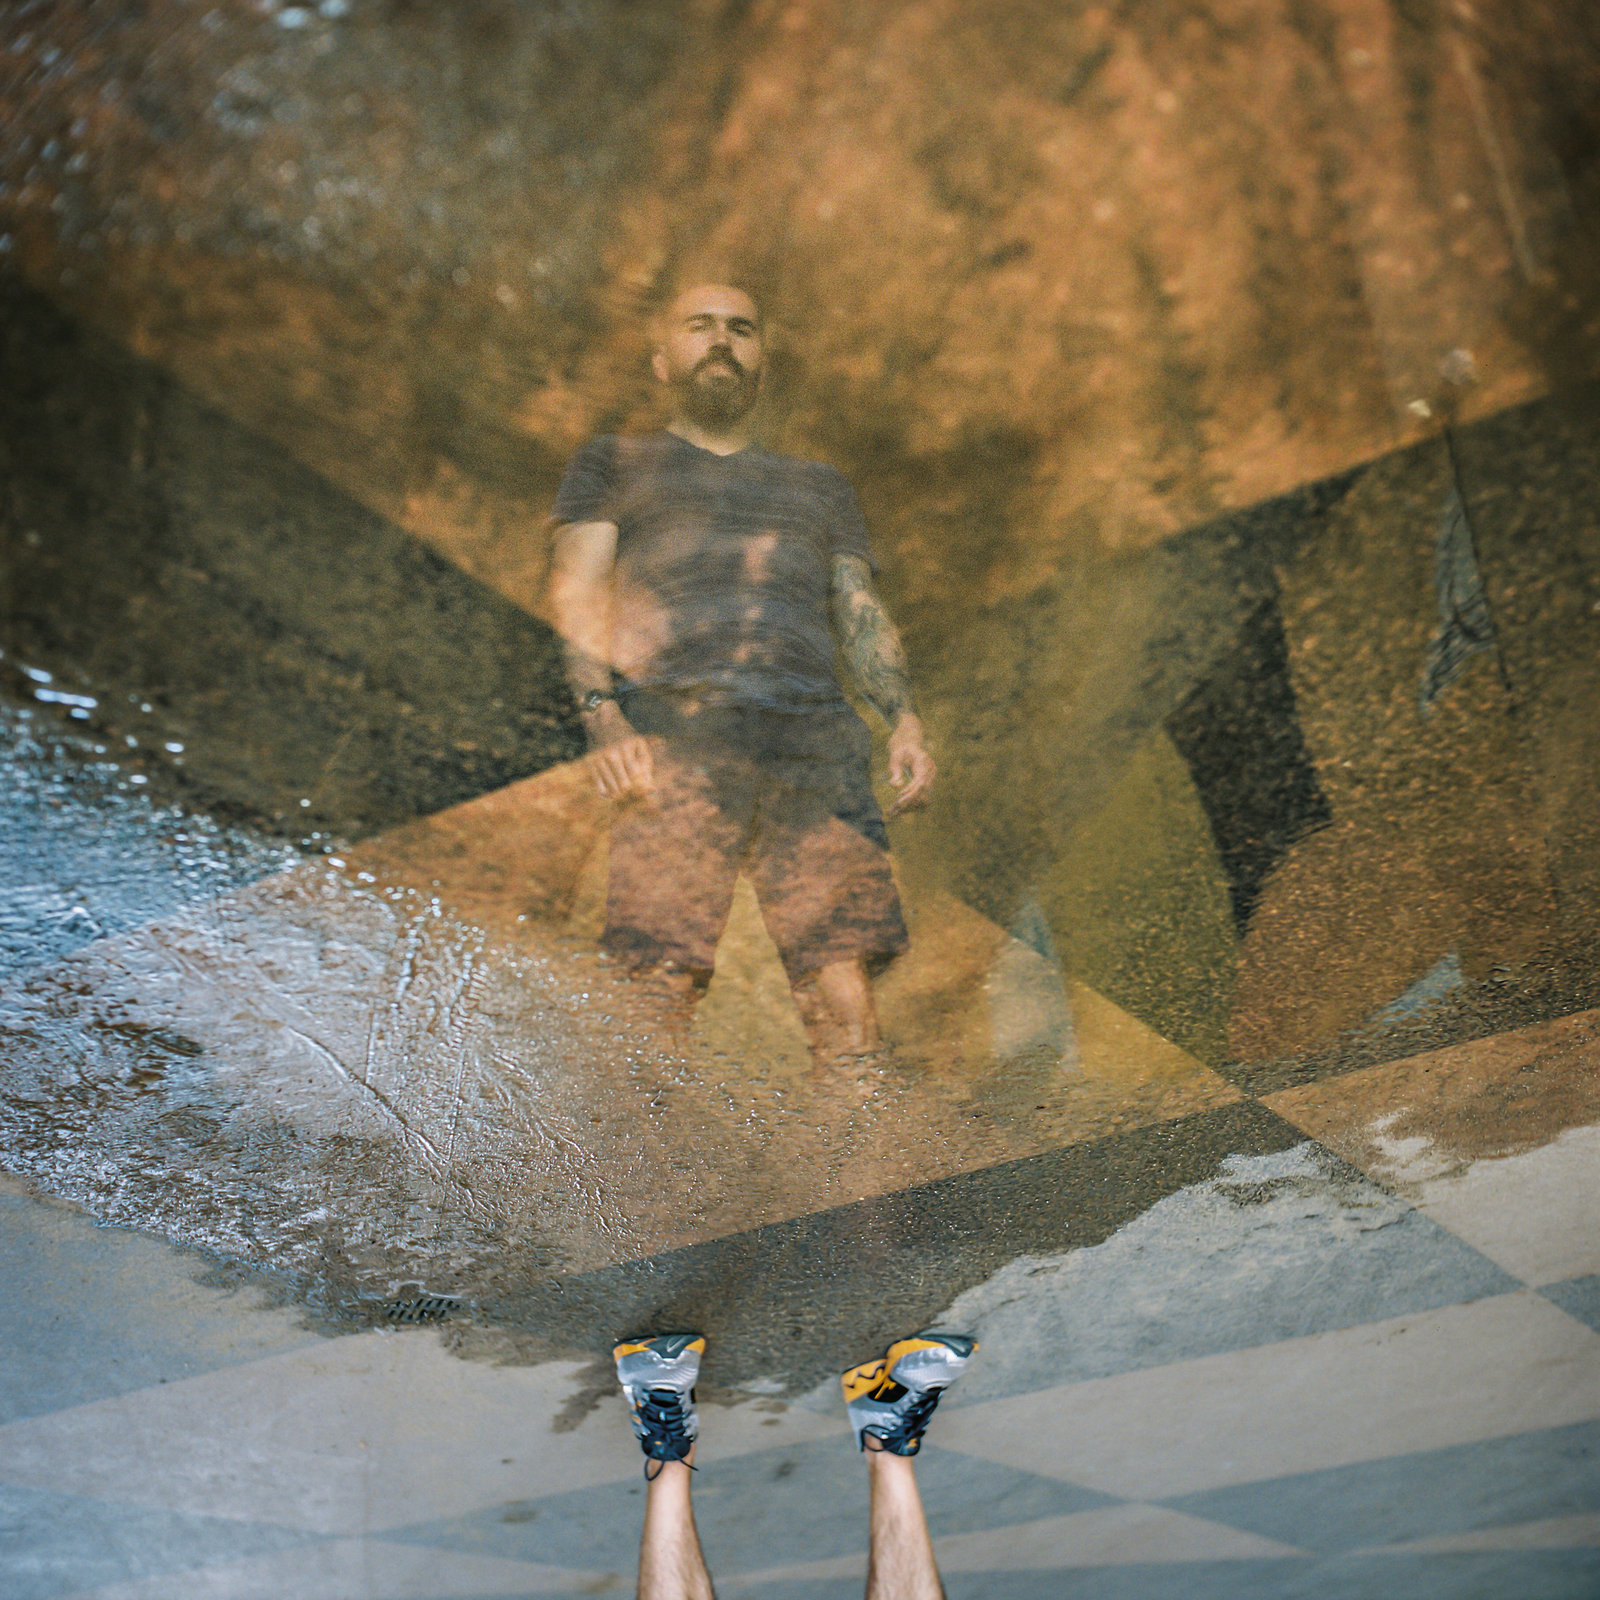 A reflection in standing water of a man upside down.